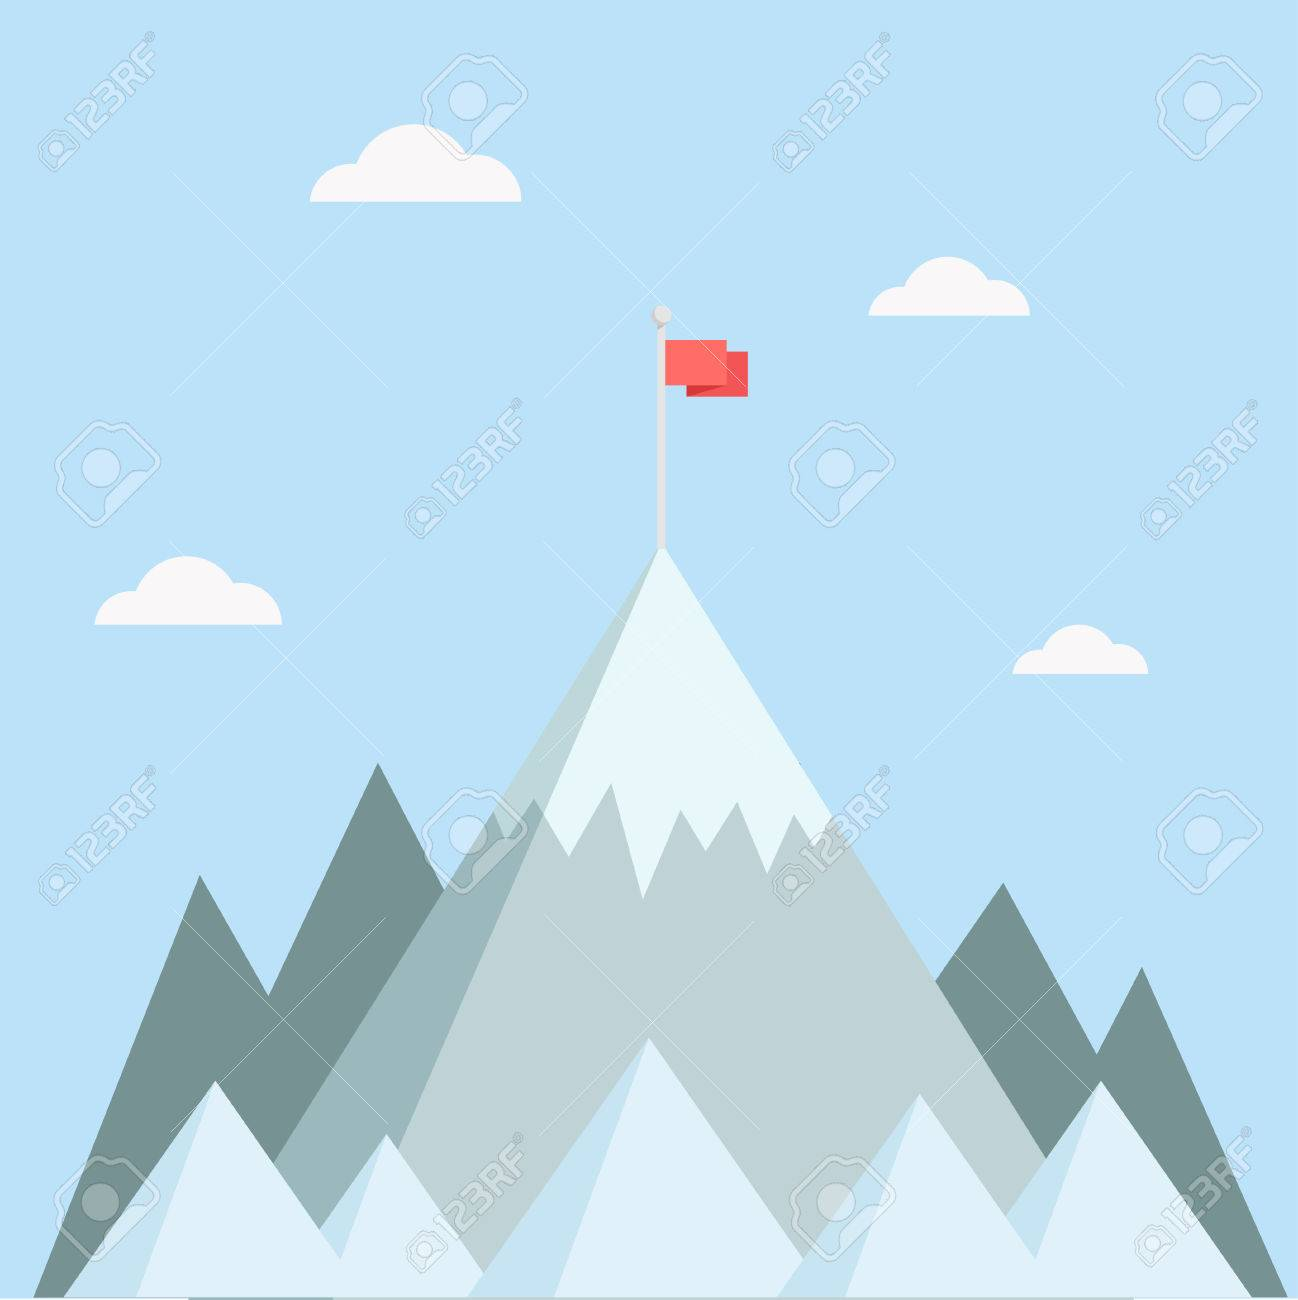 Mountain top vector illustration. Mountain peak in a flat style. Mountain with flag. Concept for illustration goals achievement, success. Mountain top with flag. - 55508906